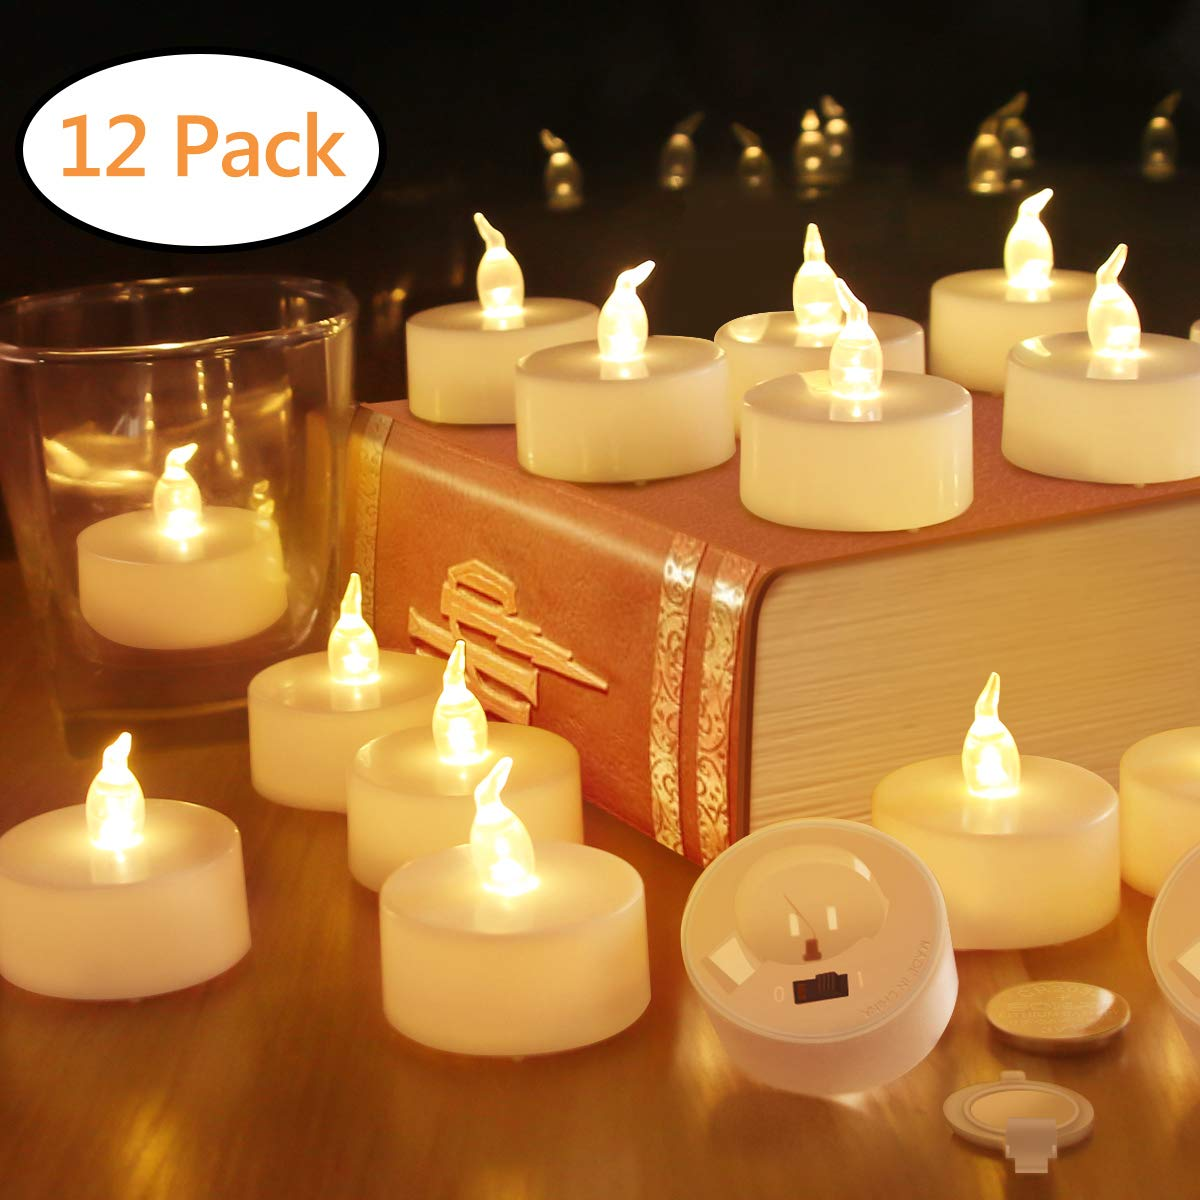 Tea Lights Flameless Candles Votive Candle LED TeaLight Fake Candles Battery Operated Tea Light Unscented Realistic Tealight 200 Hours Warm Yellow Flame Christmas Decorations 12 Packs